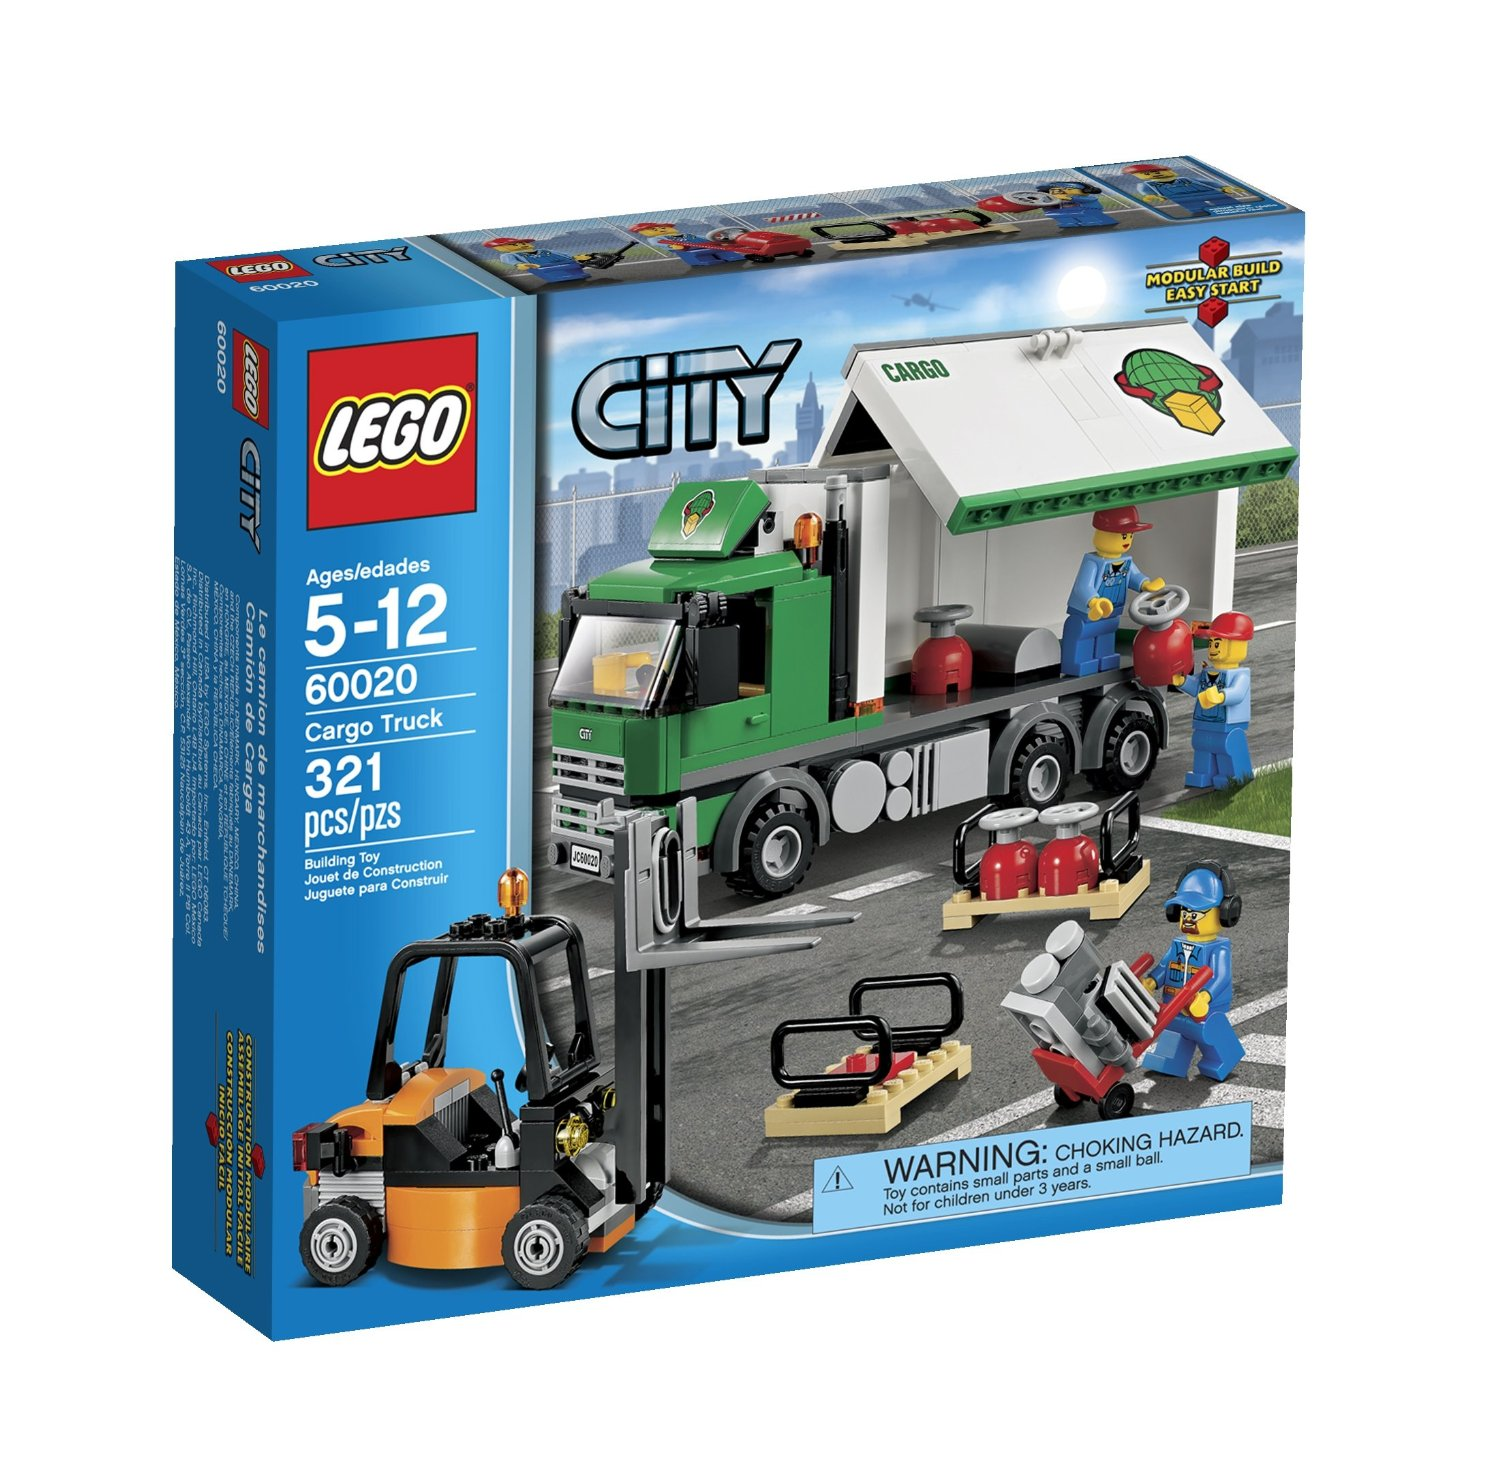 Buy Lego City 60020 Cargo Truck Toy Building Set In Cheap Price On